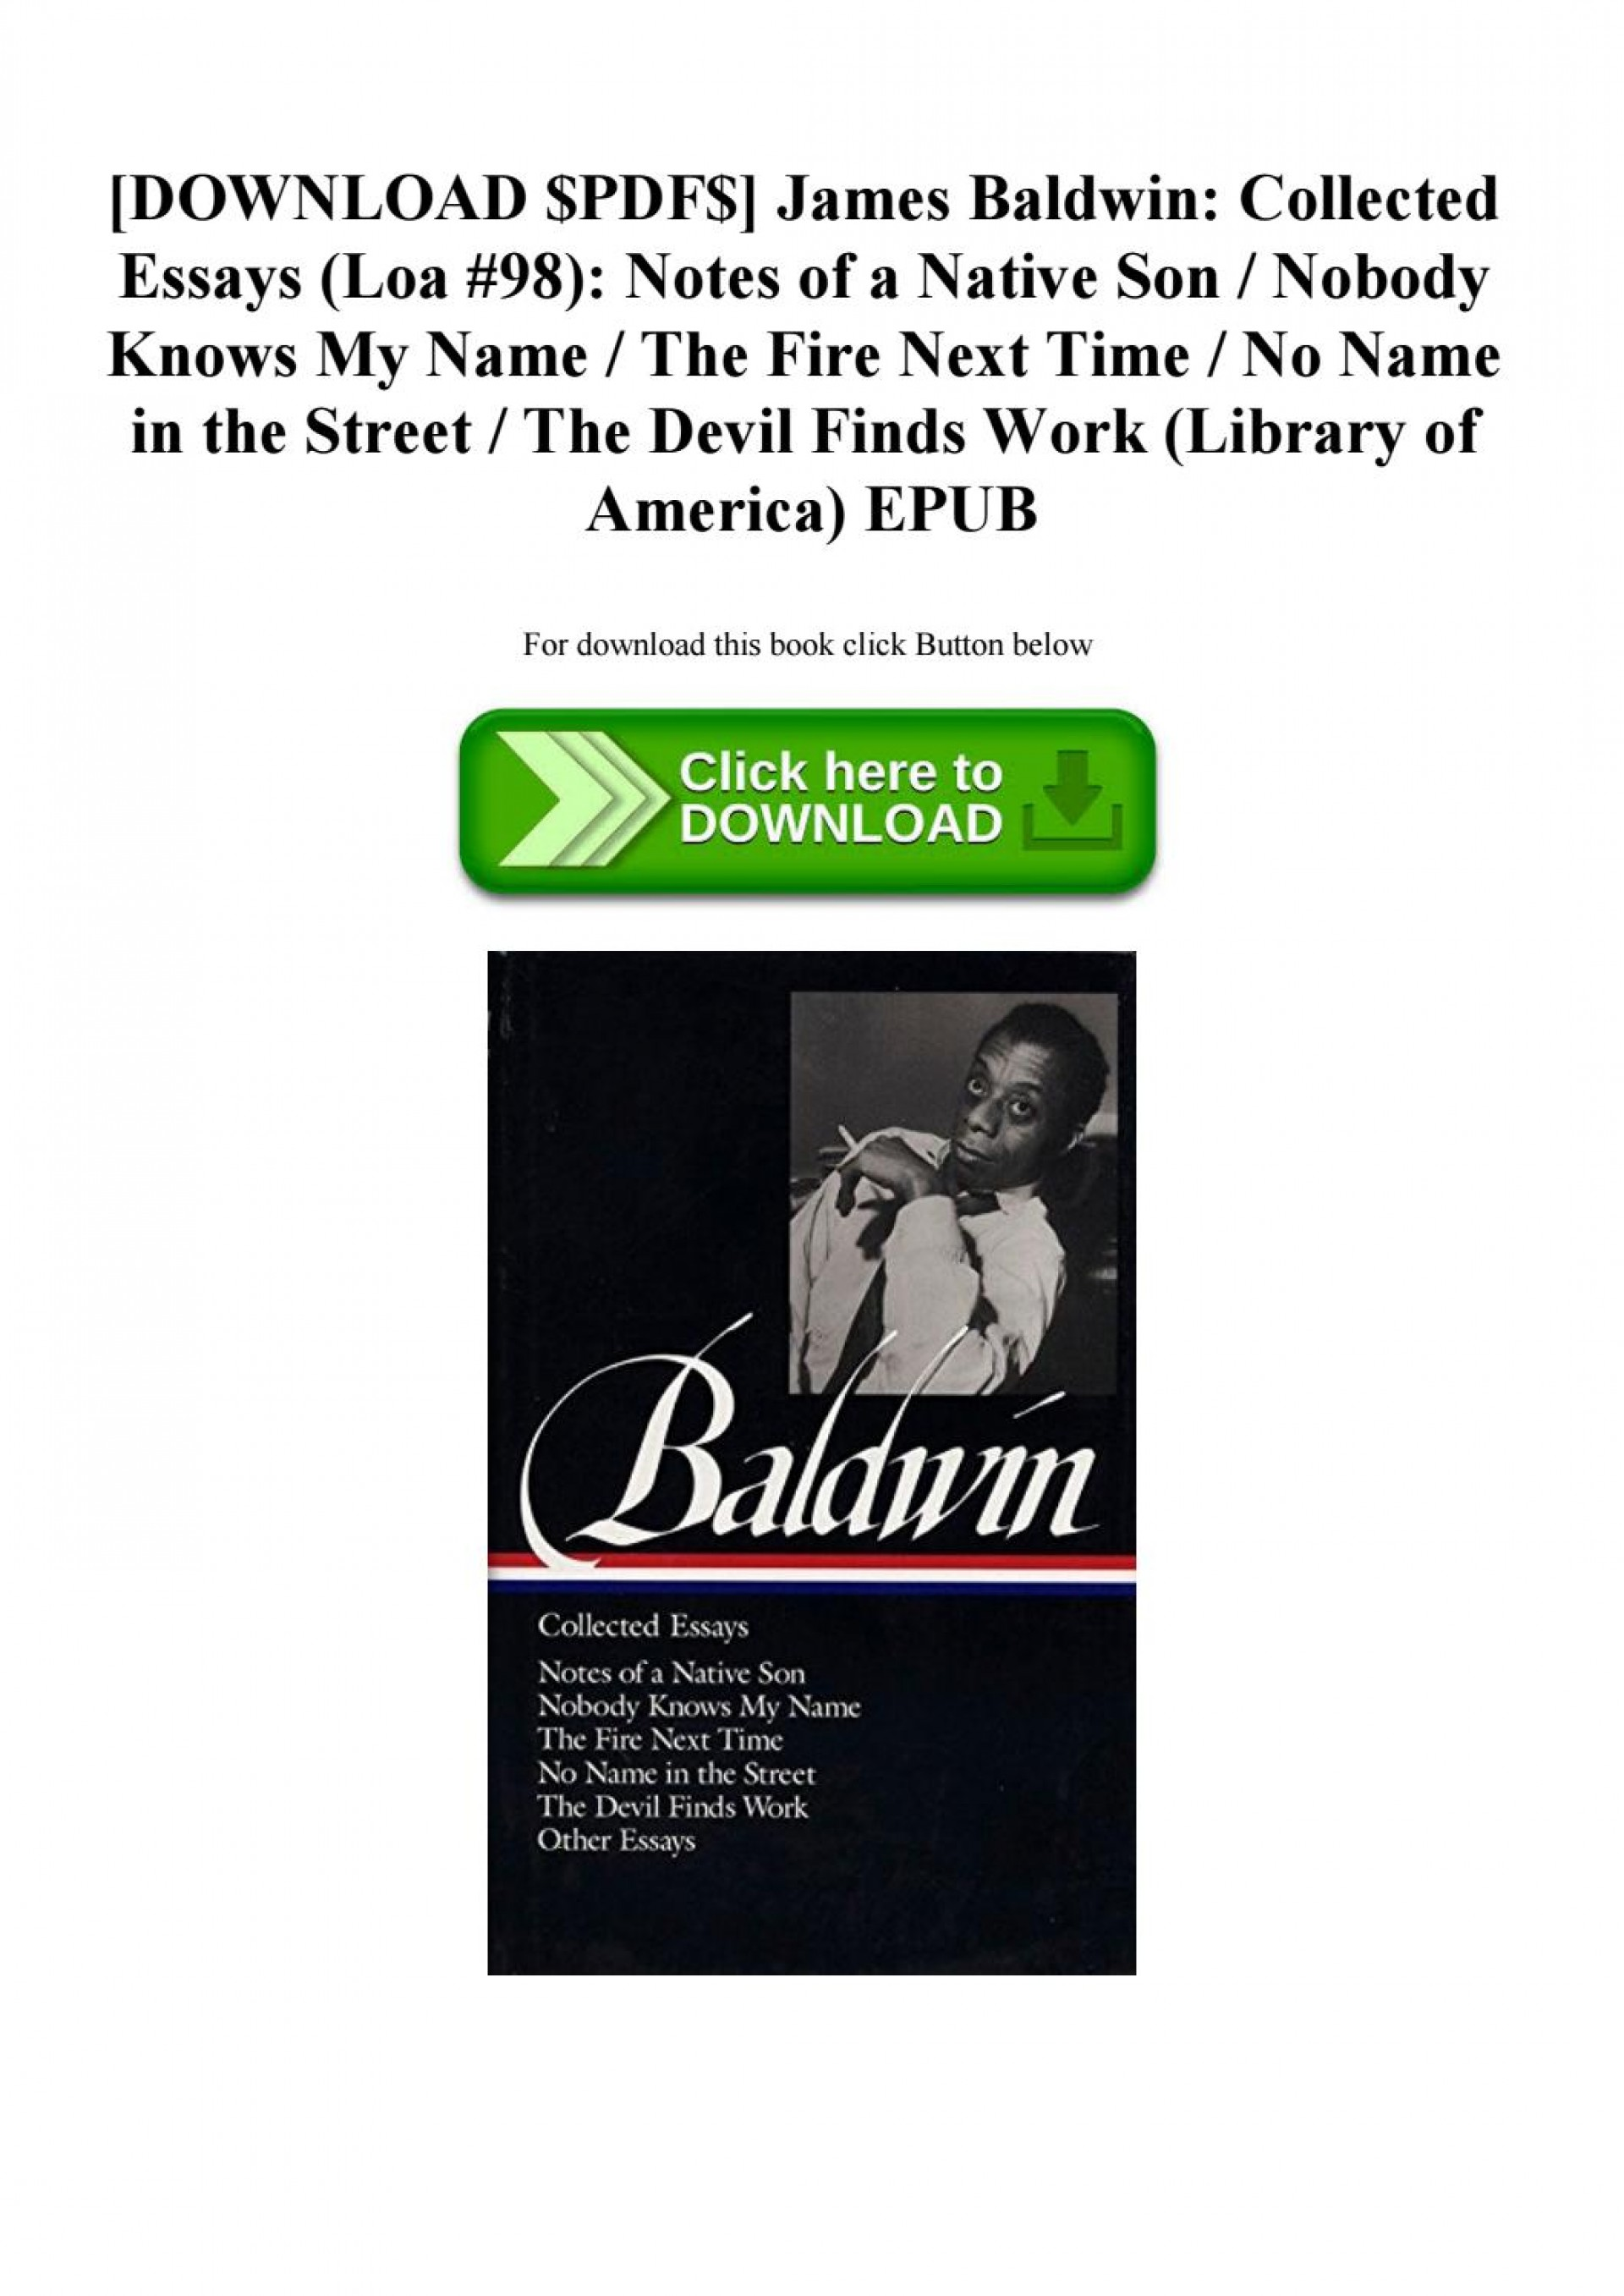 006 Page 1 James Baldwin Collected Essays Essay Wondrous Table Of Contents Ebook Google Books 1920